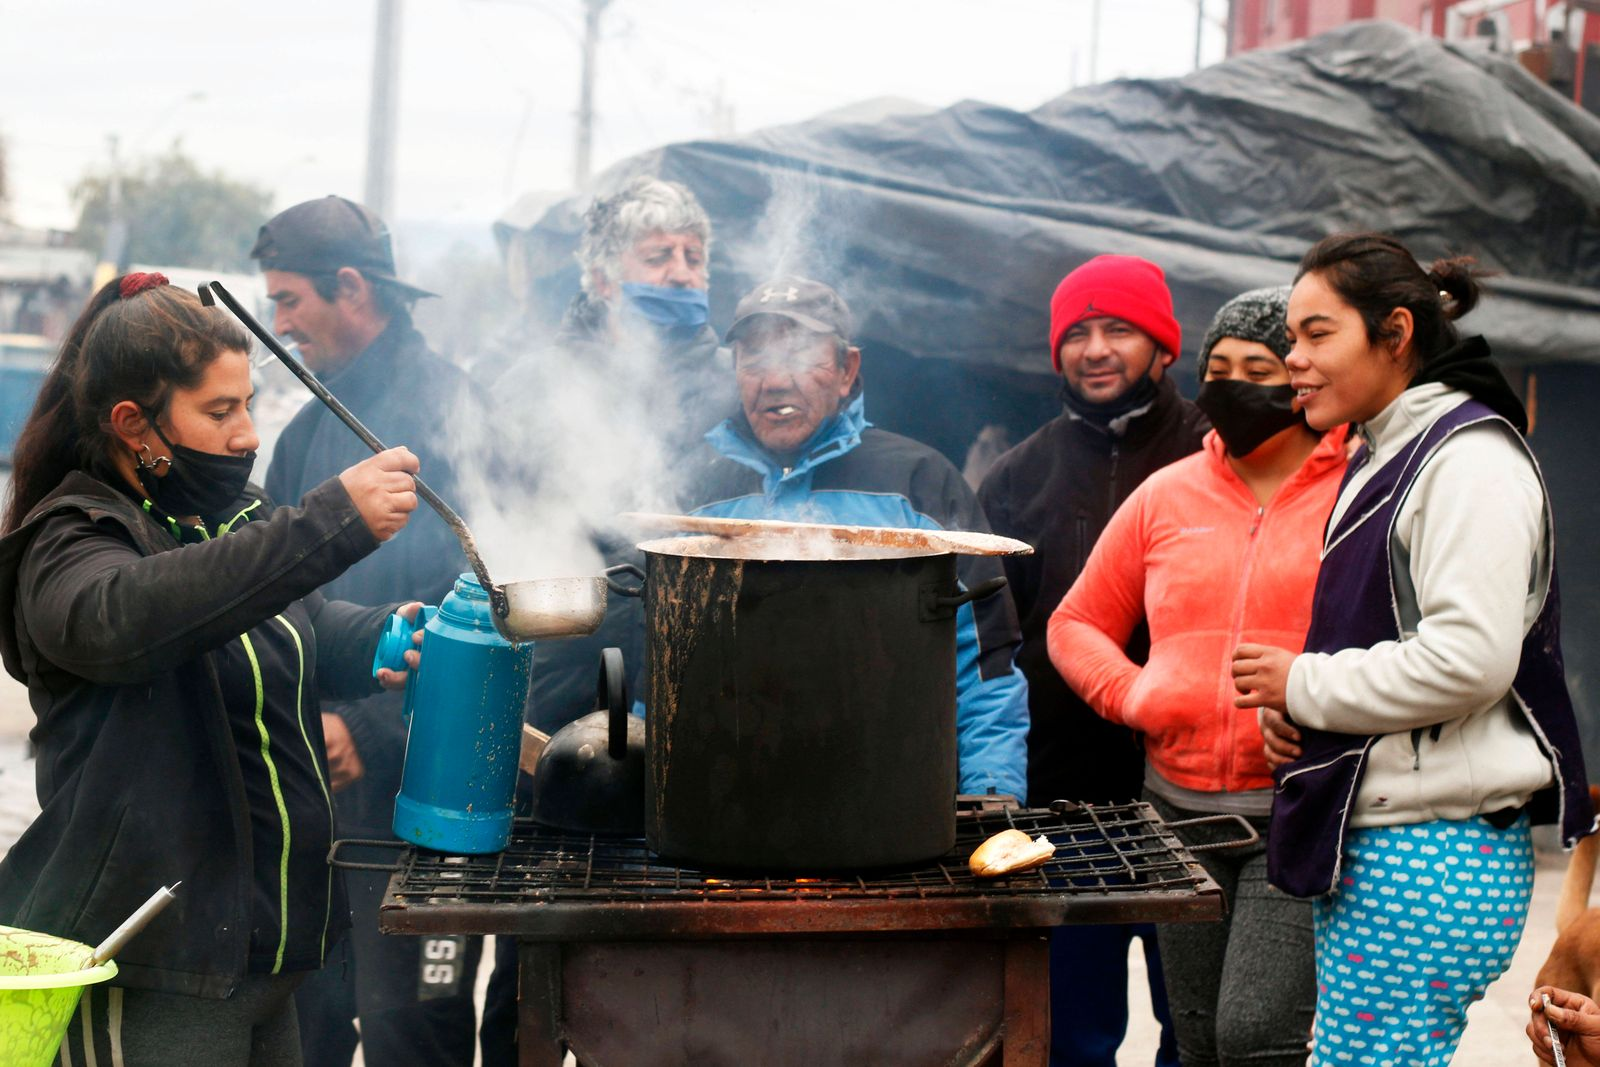 June 3, 2020 - Santiago, Chile - A group of neighbors cooks during a common pot (self-managed soup kitchen) in the midst